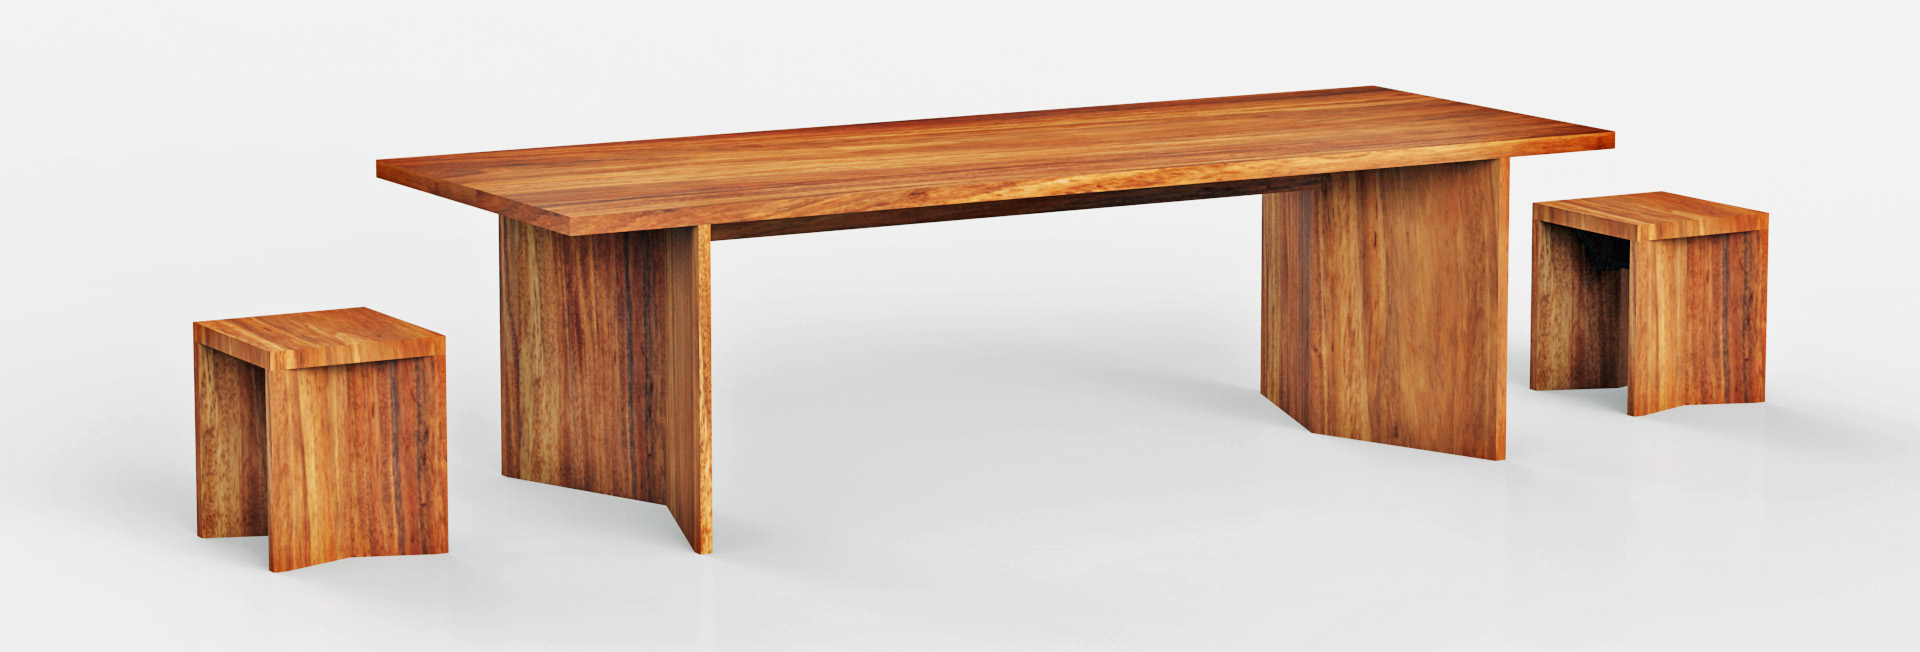 Dining room table length